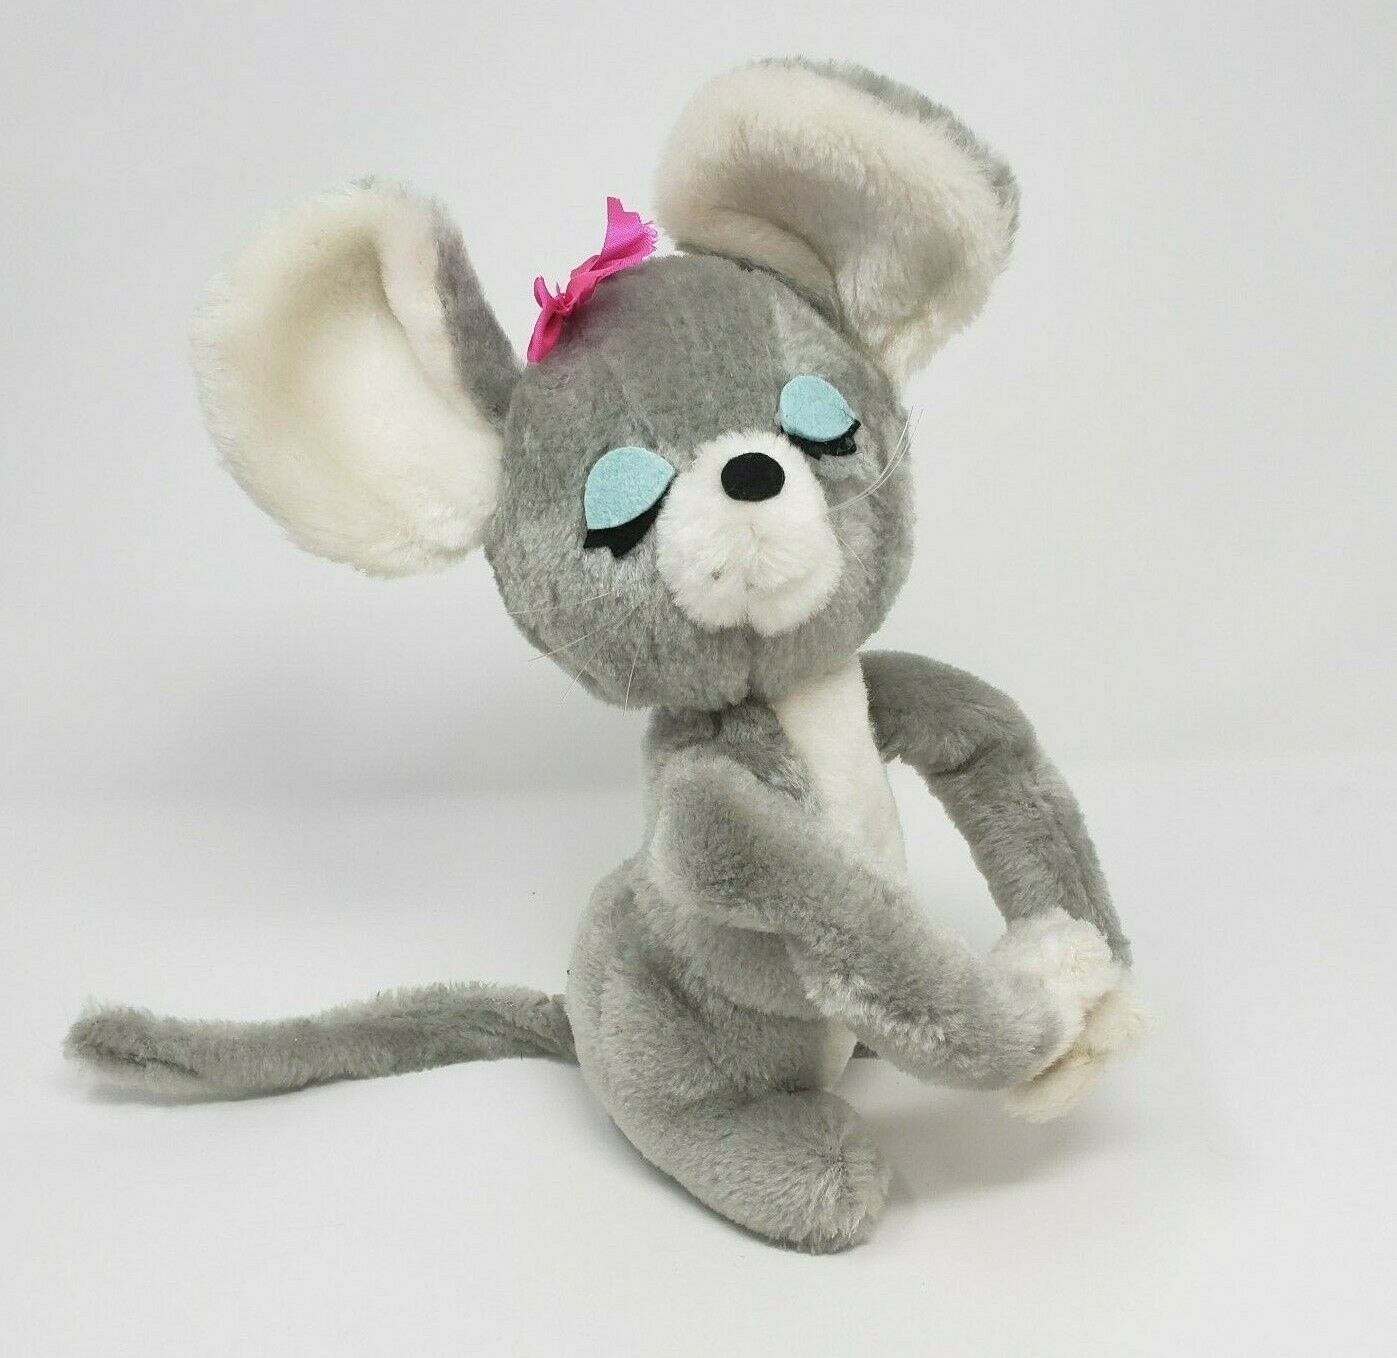 Primary image for VINTAGE 1976 DAKIN HUGGING MICE MOUSE REPLACEMENT GIRL STUFFED ANIMAL PLUSH TOY